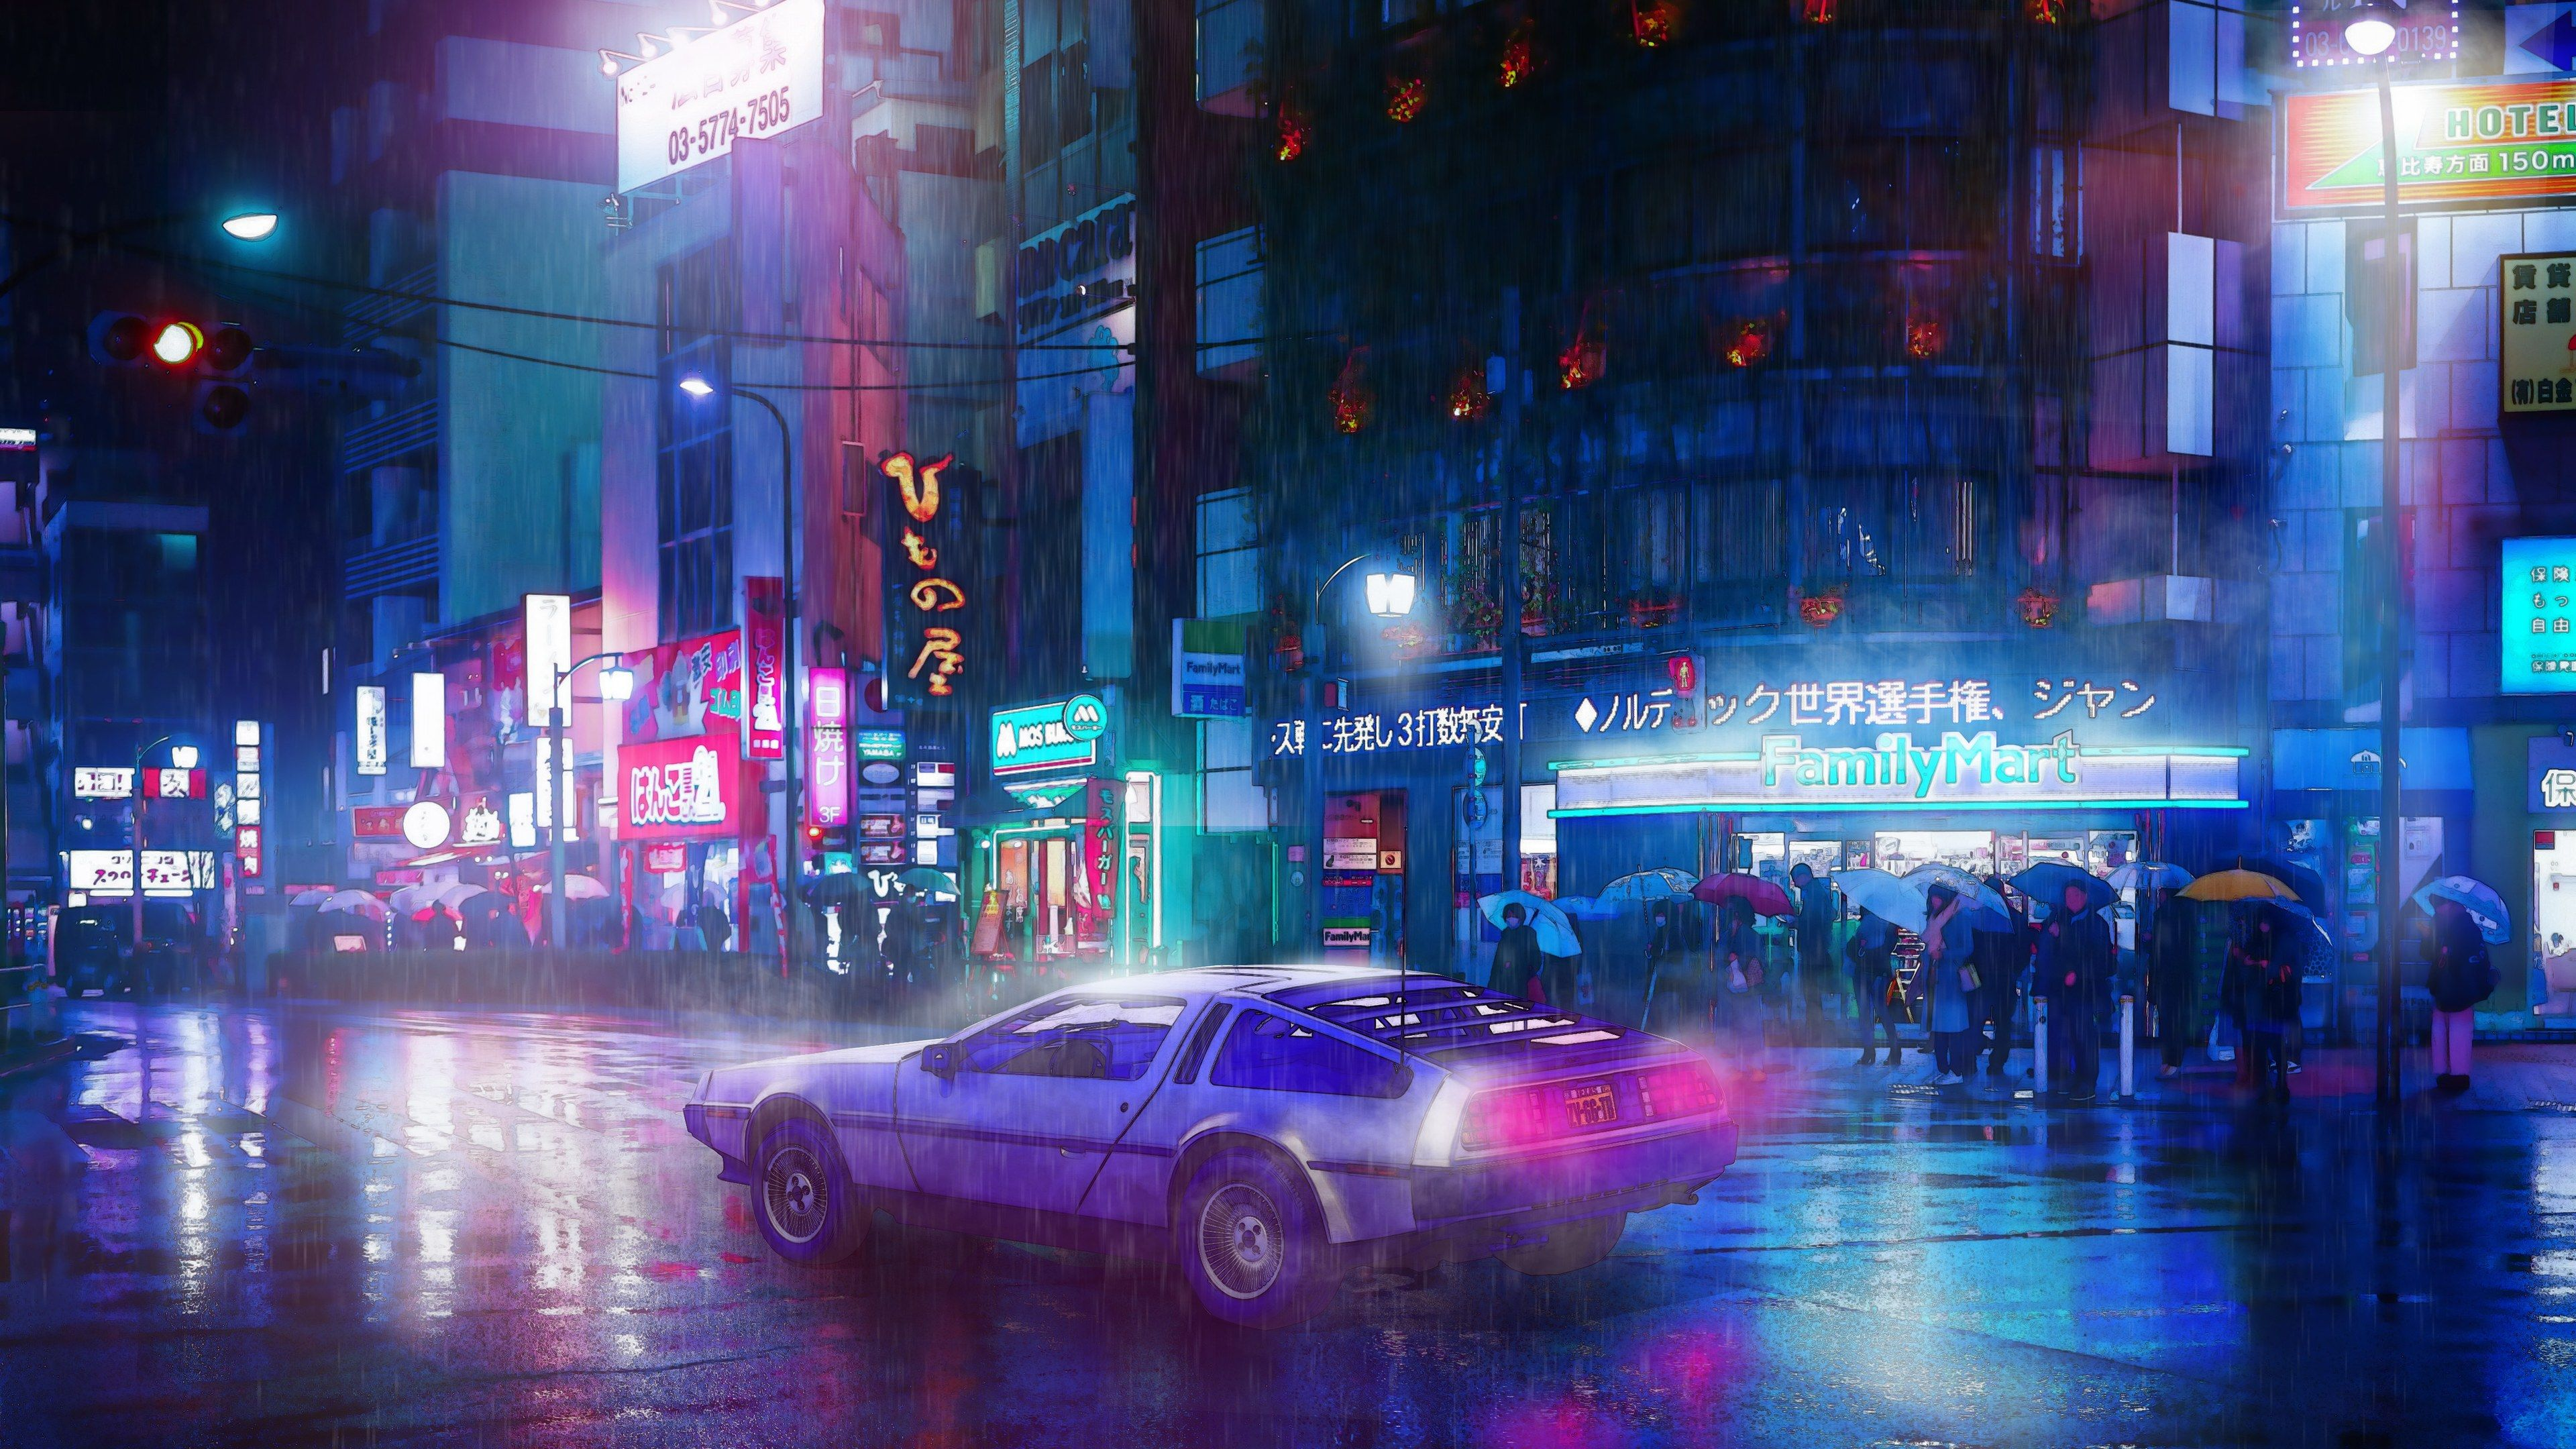 My Cyberpunk Ride Neon Wallpapers Hd Wallpapers Digital Art Wallpapers Cyberpunk Wallpapers Artwork Wallpapers Artist W Cyberpunk Neon Wallpaper Synthwave